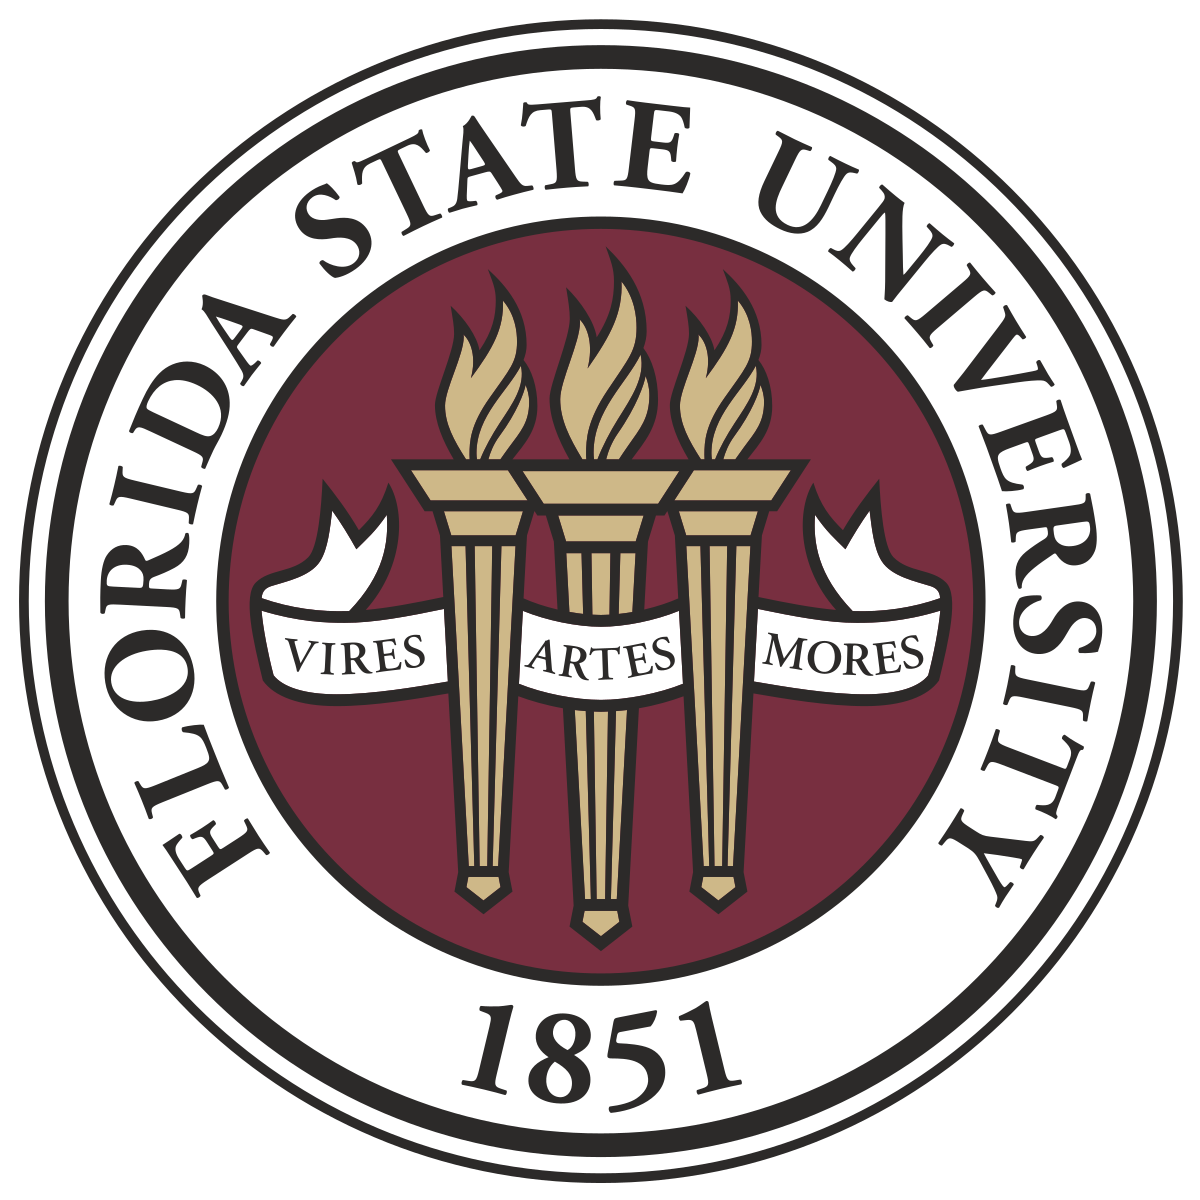 Fsu svg florida state. University wikipedia